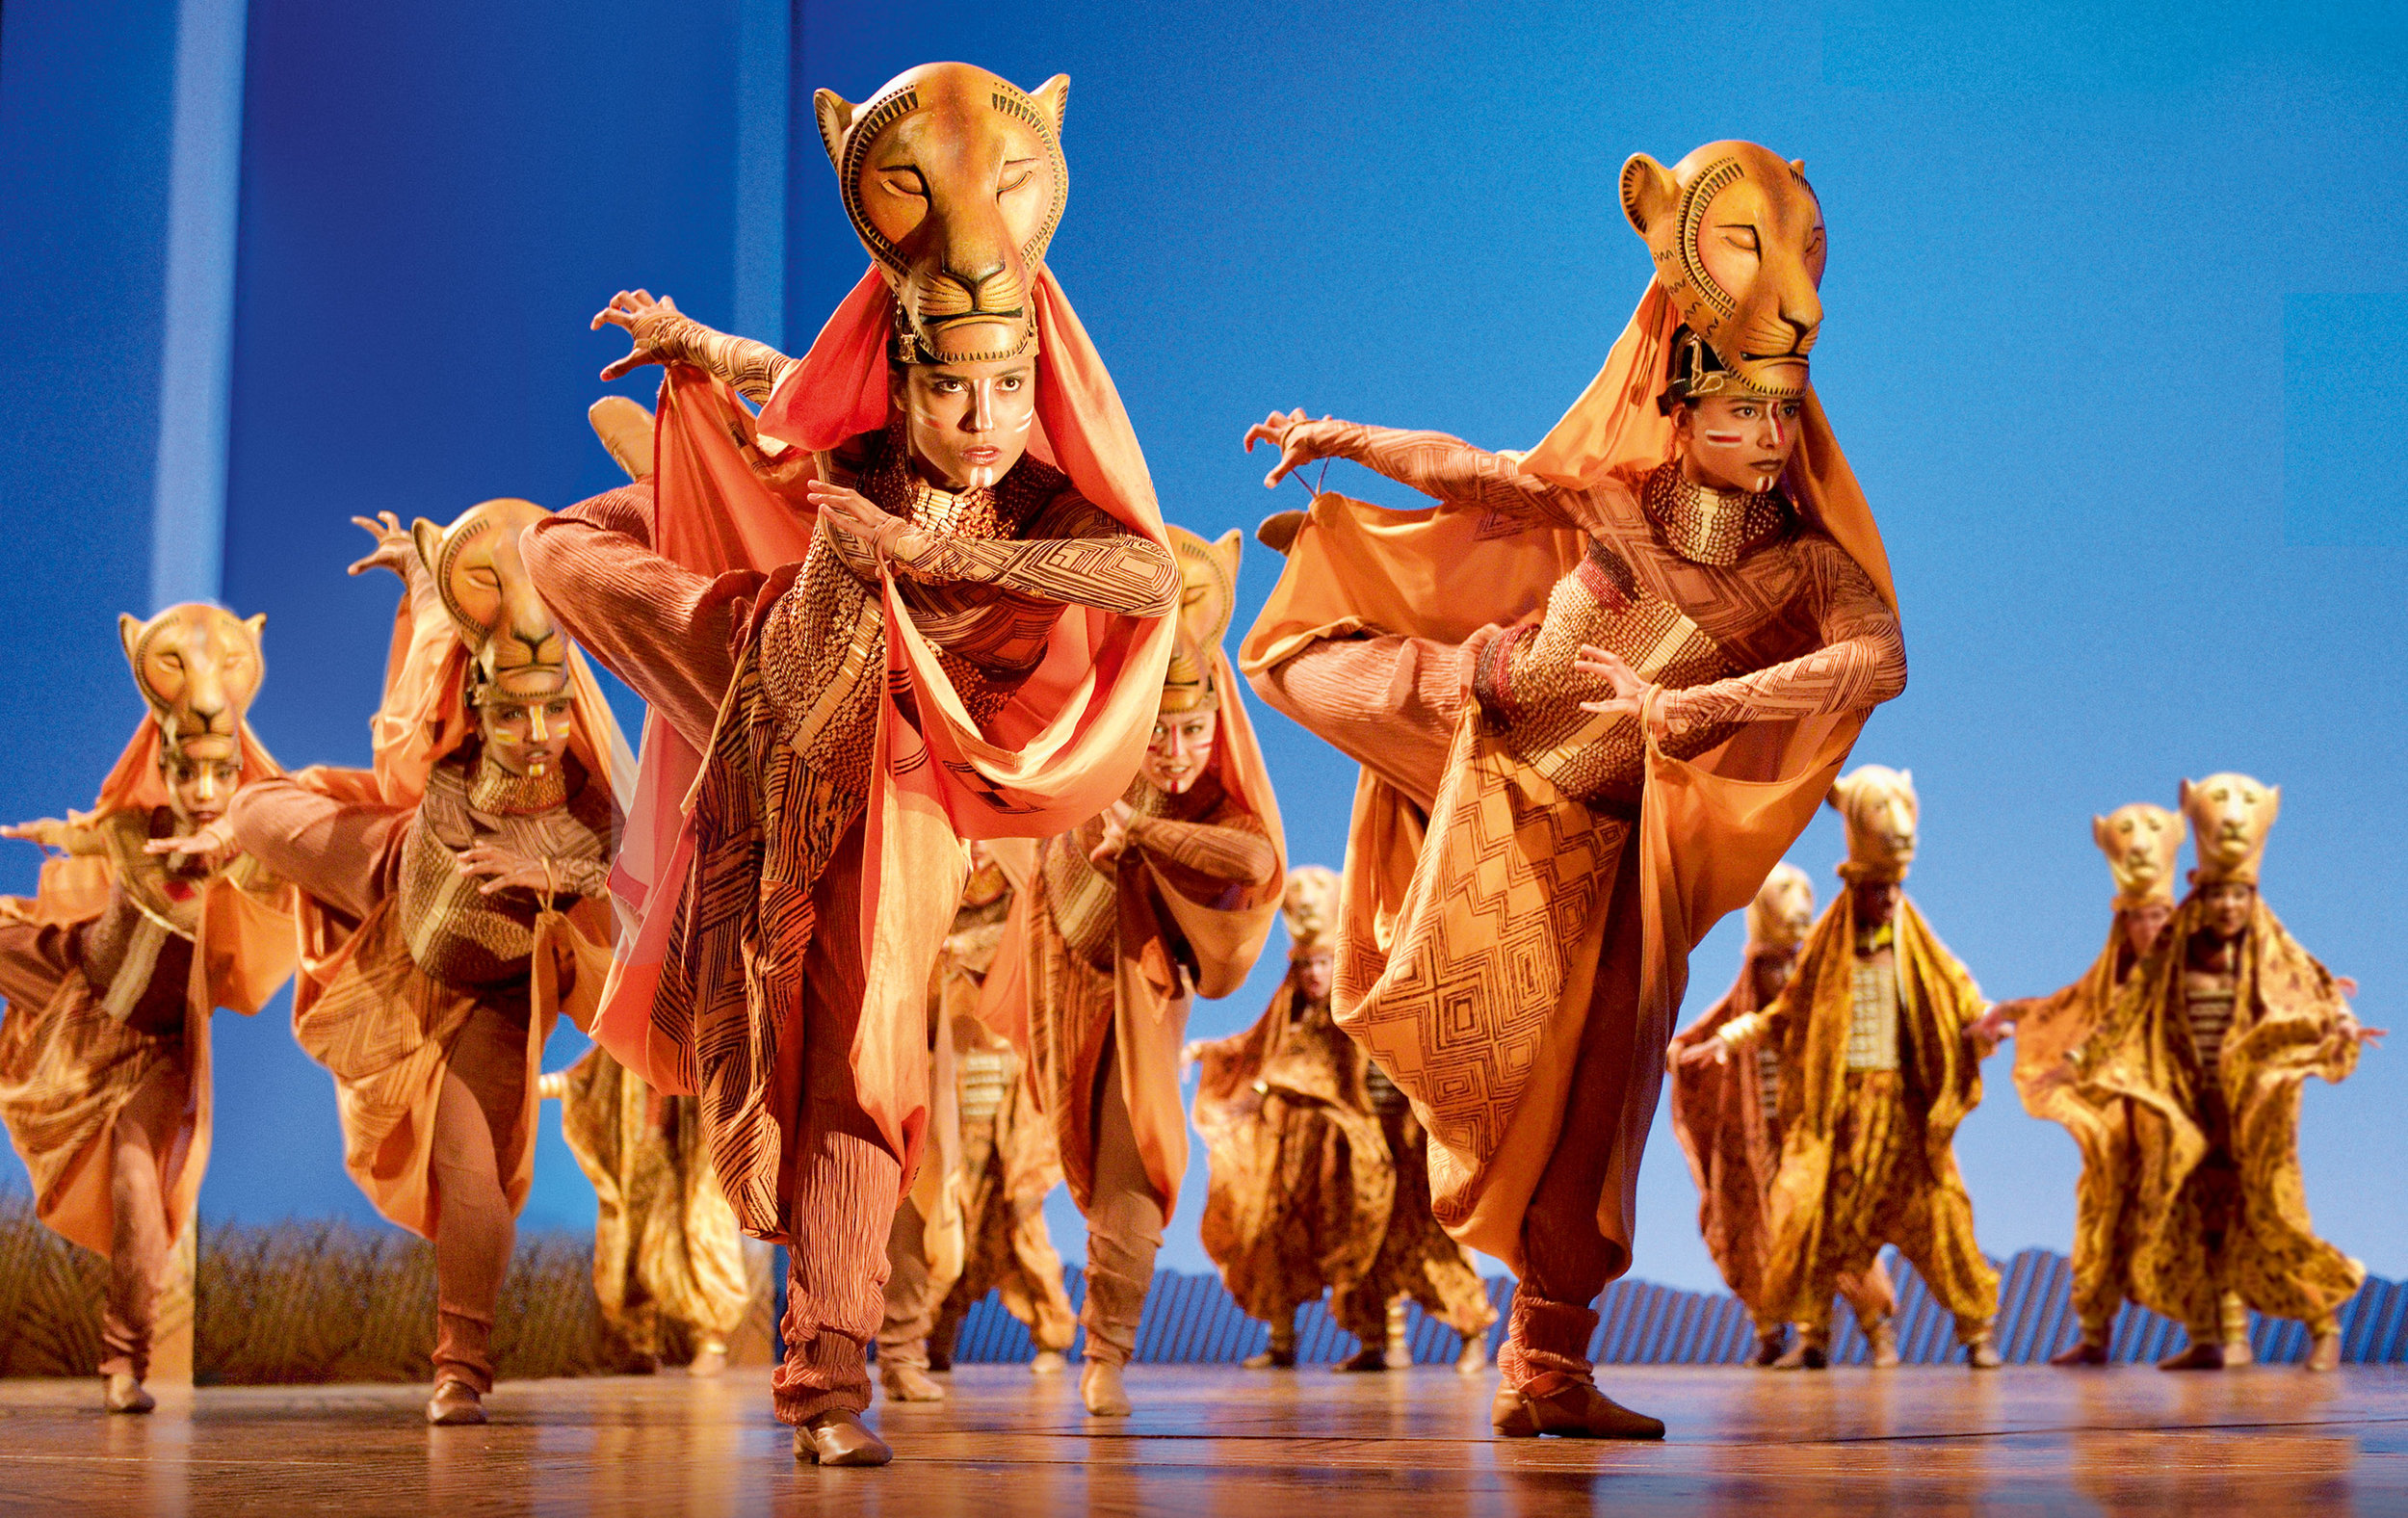 A scene from Disney's The Lion King which comes to Bristol Hippodrome from September 7 until November 23, 2019. Photo by Deen van Meer